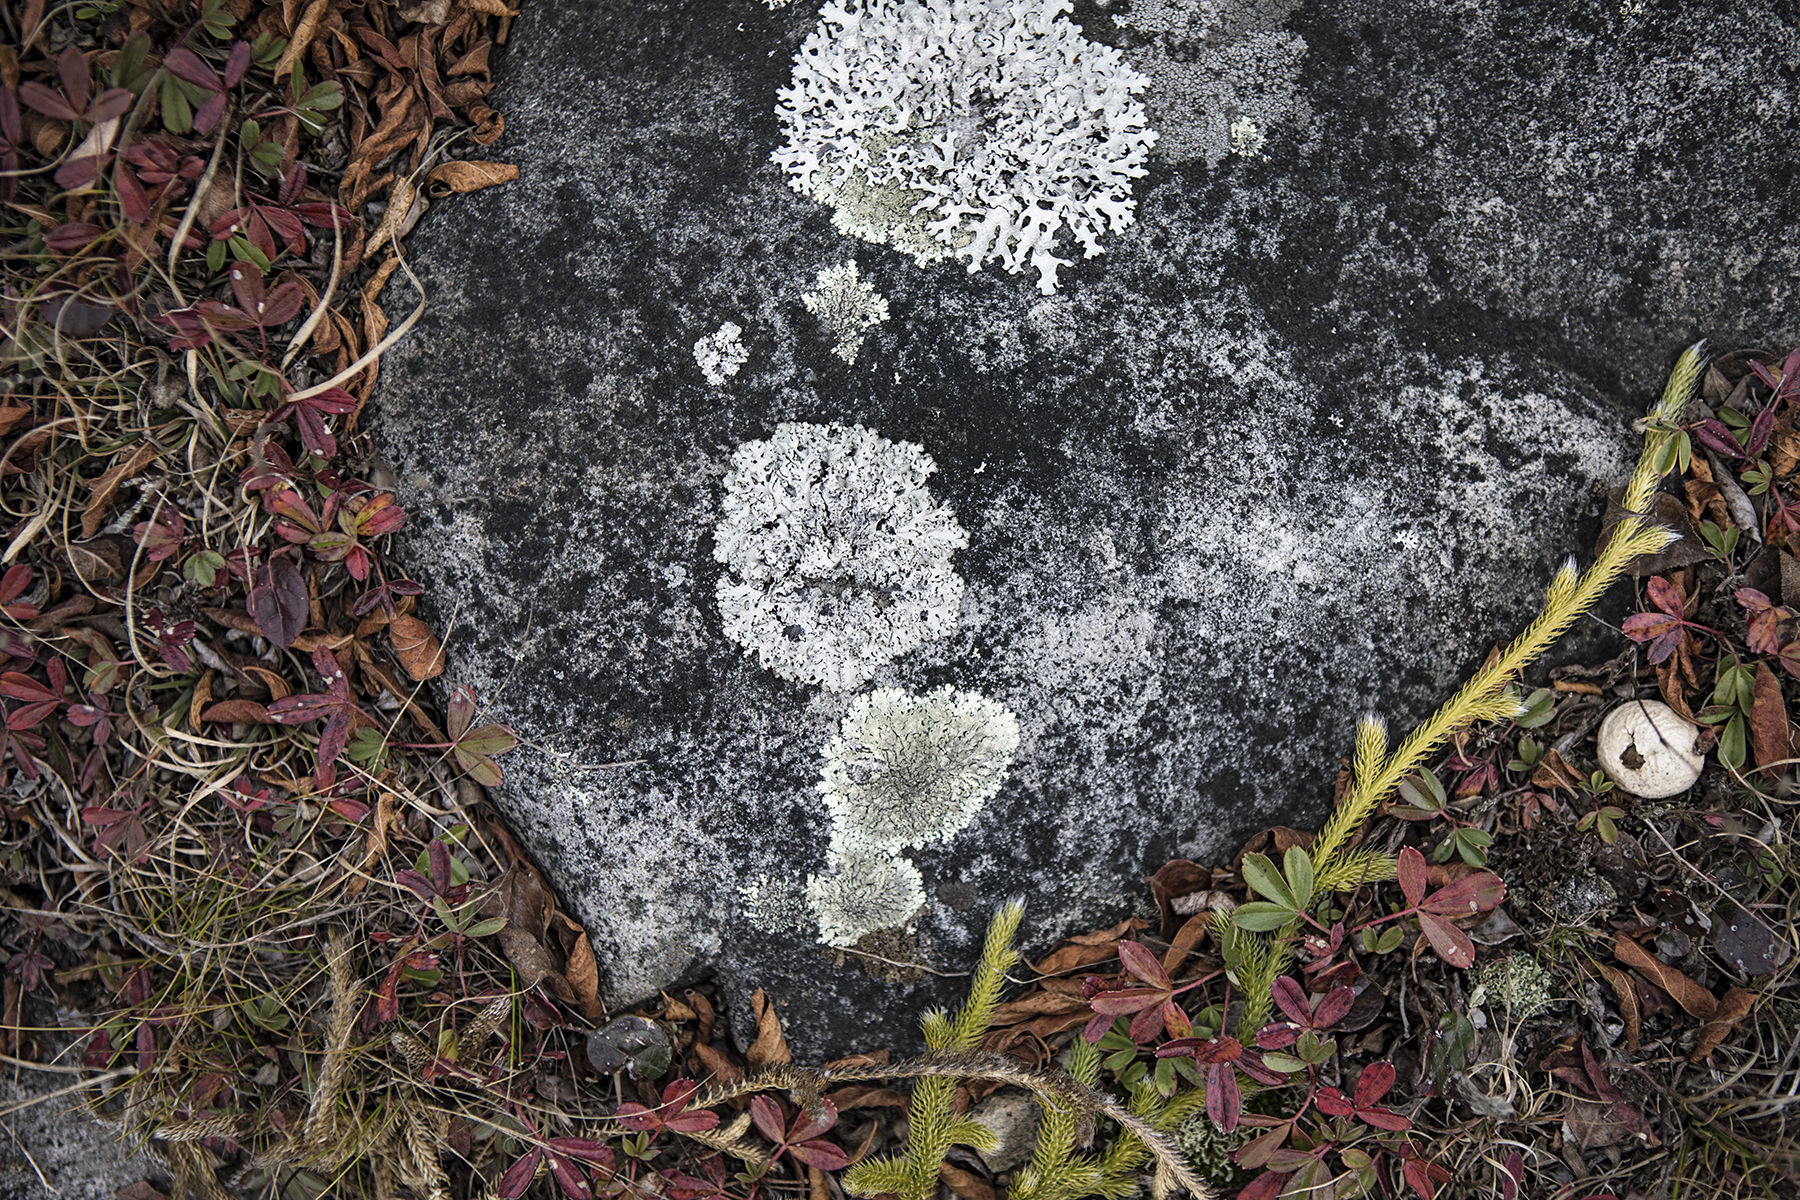 Lichens and moss.